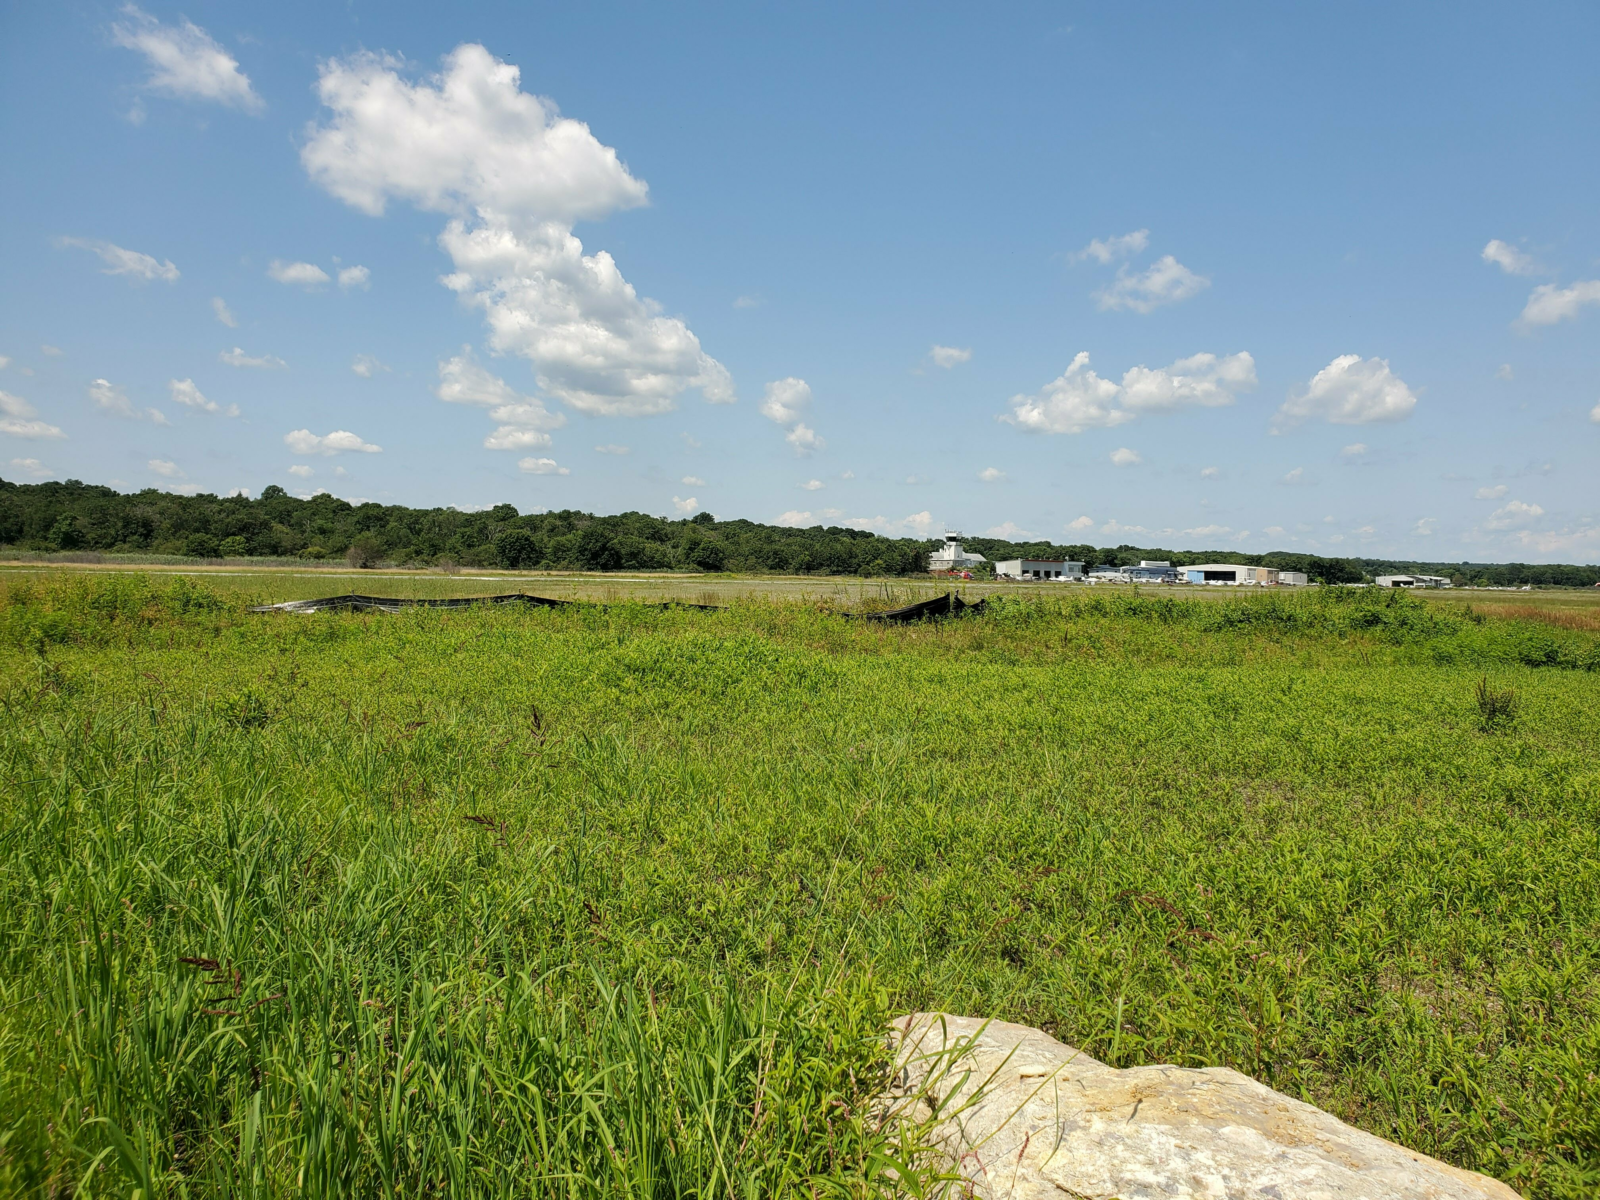 Landscape view of the Norwood Memorial Airport project